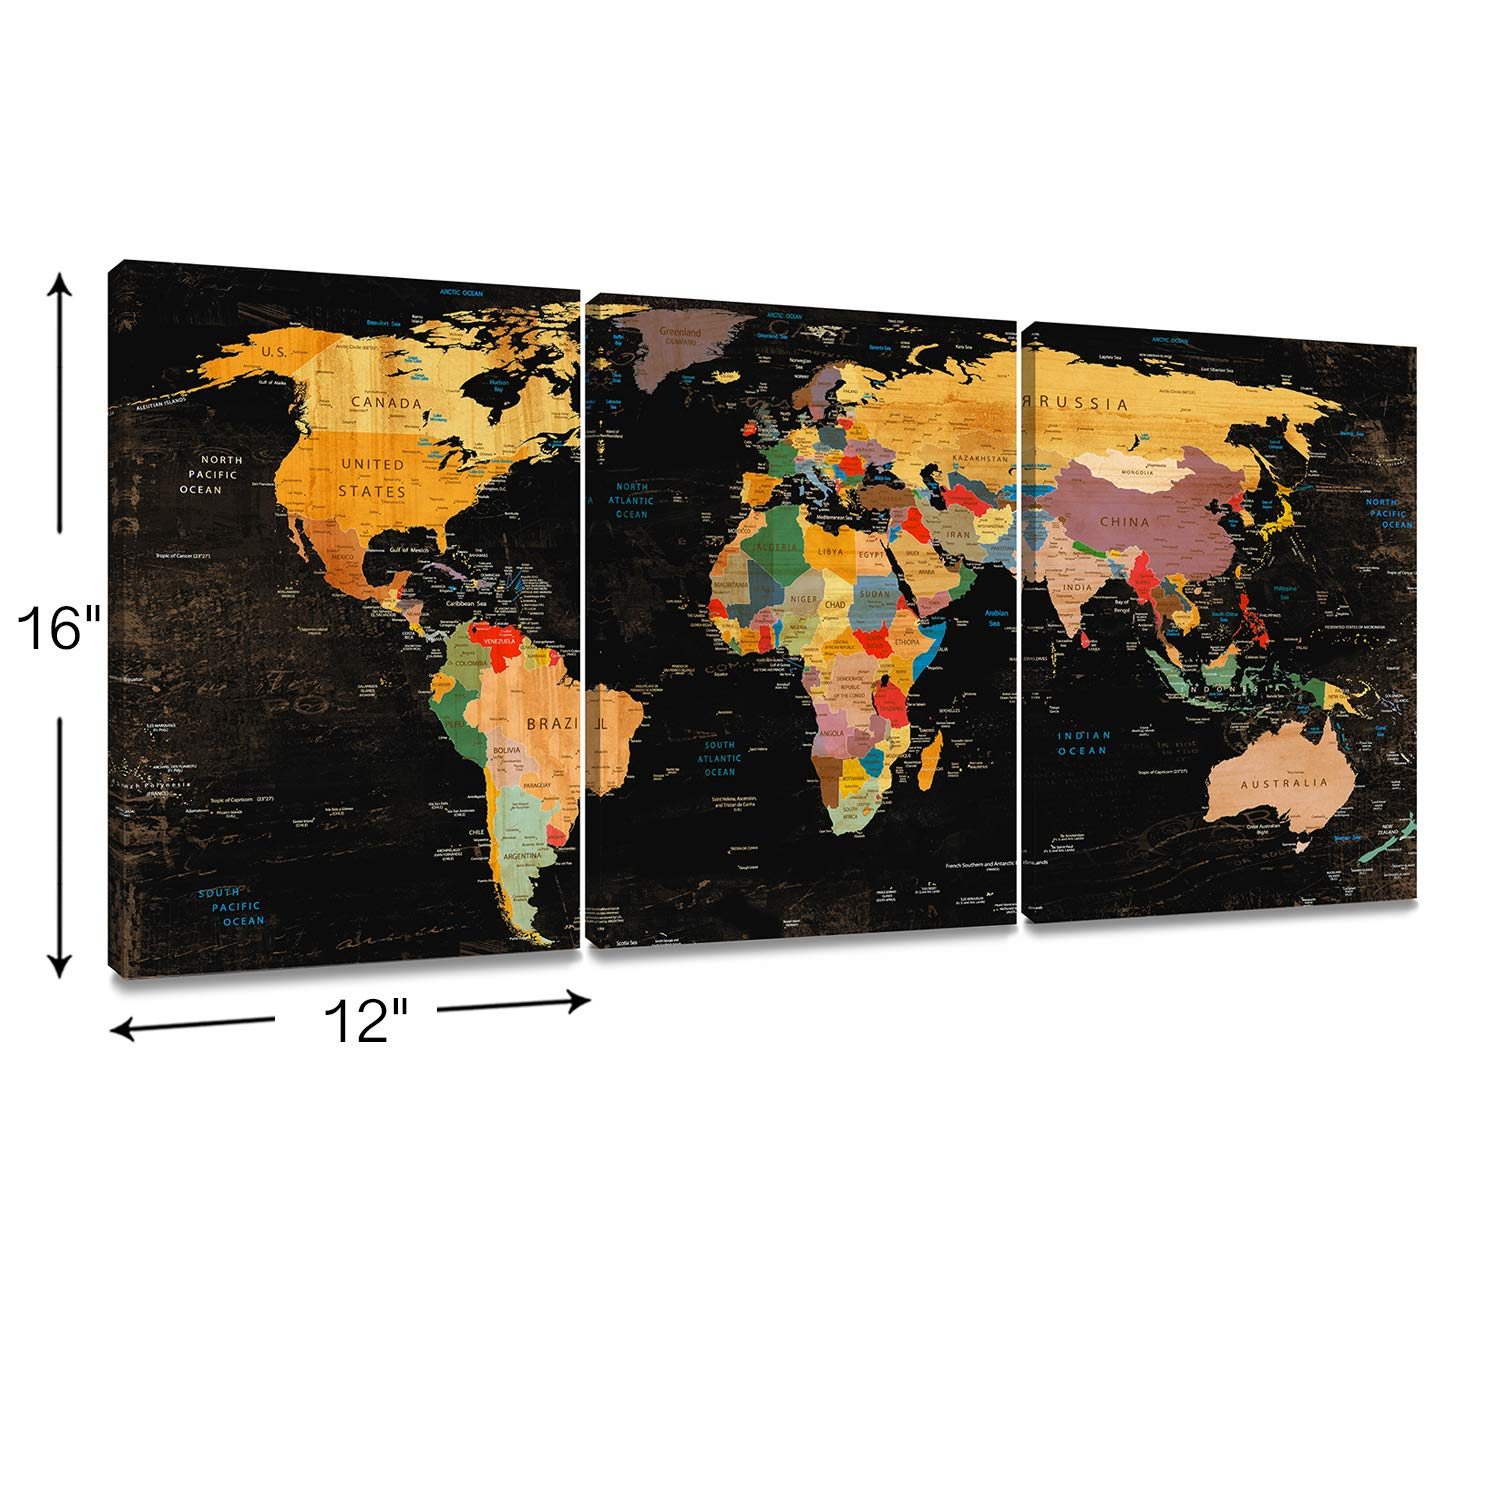 Colorful World Map Art.Decor Mi Colorful World Map Wall Art On Canvas Black Deco Prints